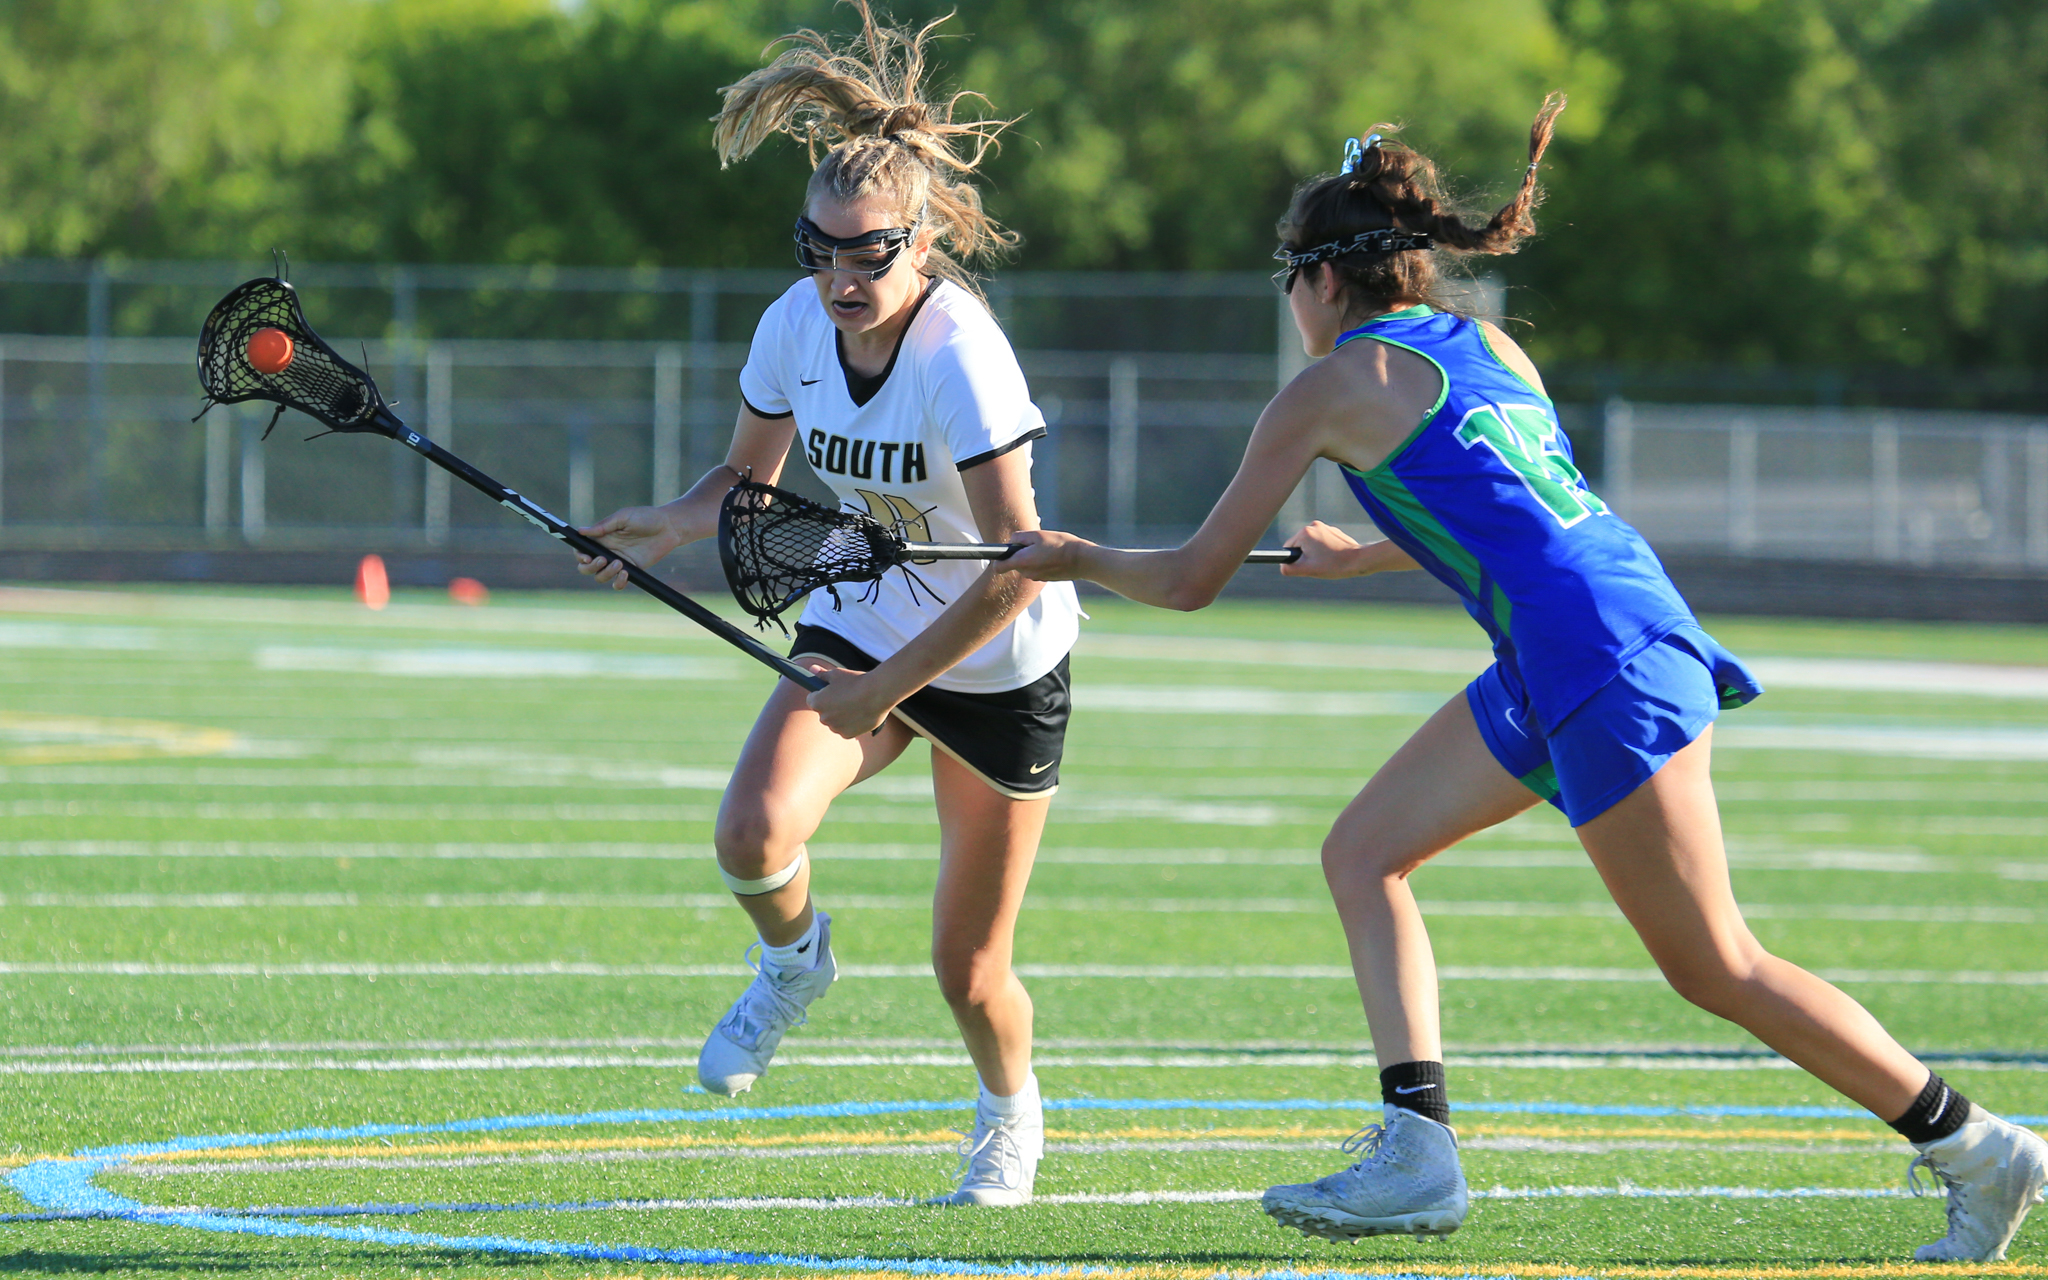 Lakeville South's Emily Moes (11) scored a game-high seven goals in a nonconference matchup against Blake Friday evening. The Cougars defeated the visiting Bears 15-13. Photo by Jeff Lawler, SportsEngine